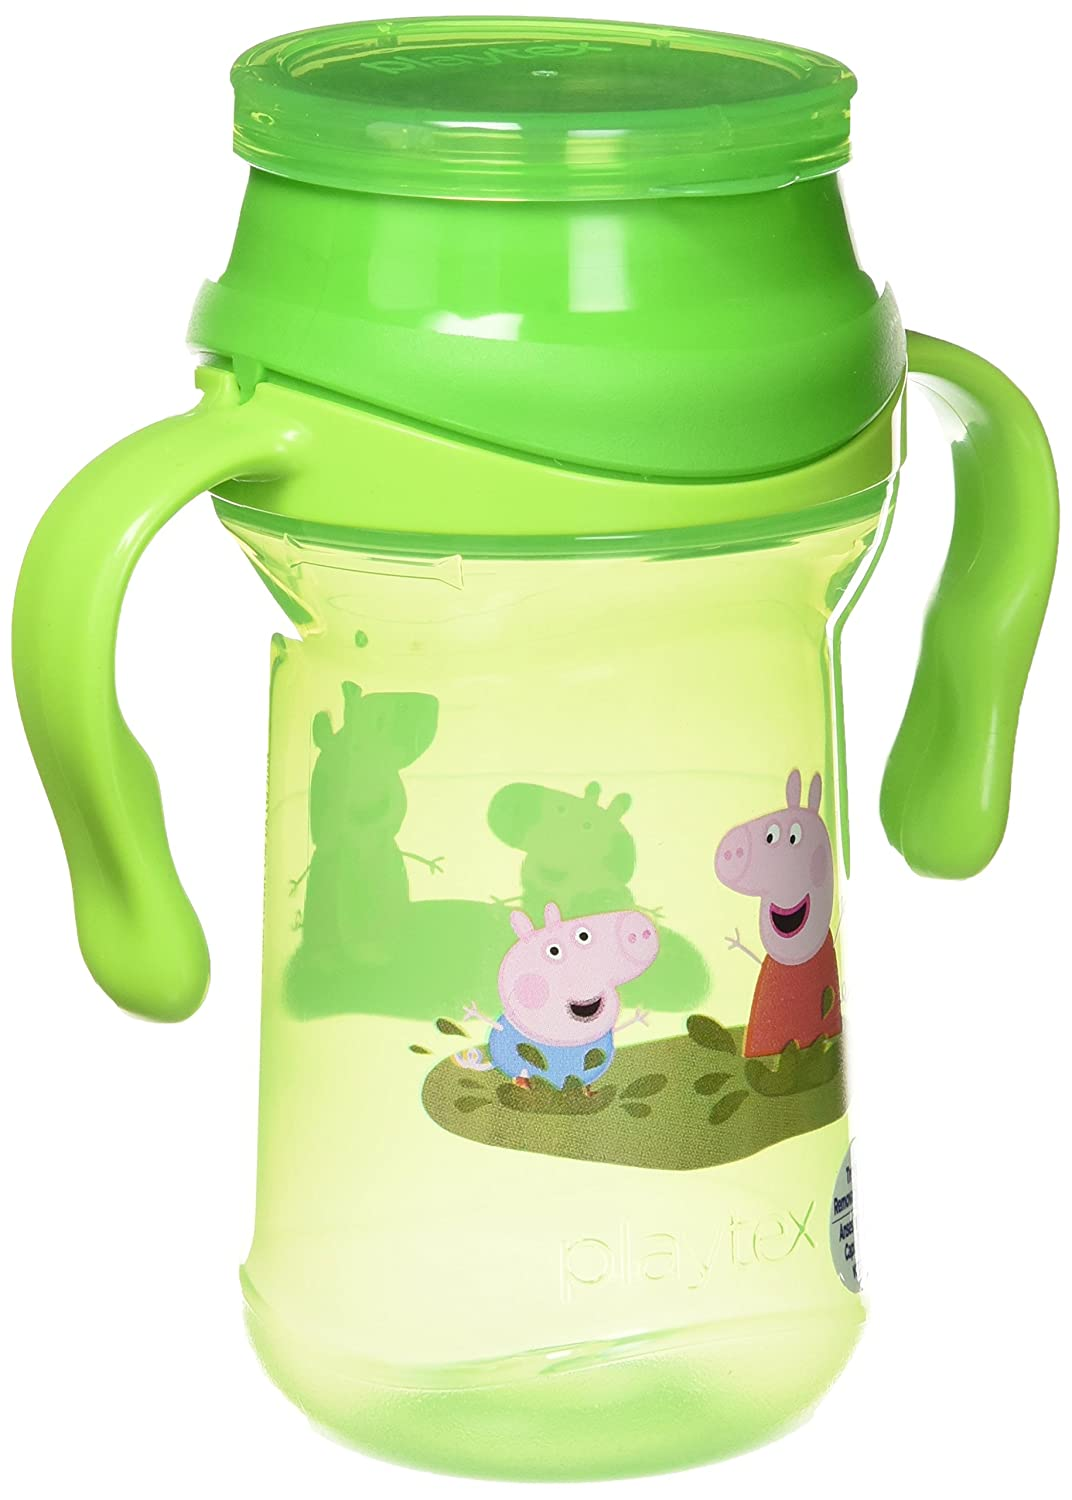 Playtex Baby Sipsters Spill-Proof Peppa Pig Spoutless 360 Training Cup with Removable Handles, Stage 1 (4+ Months), Pack of 1 Kids Cup Edgewell Personal Care 24934